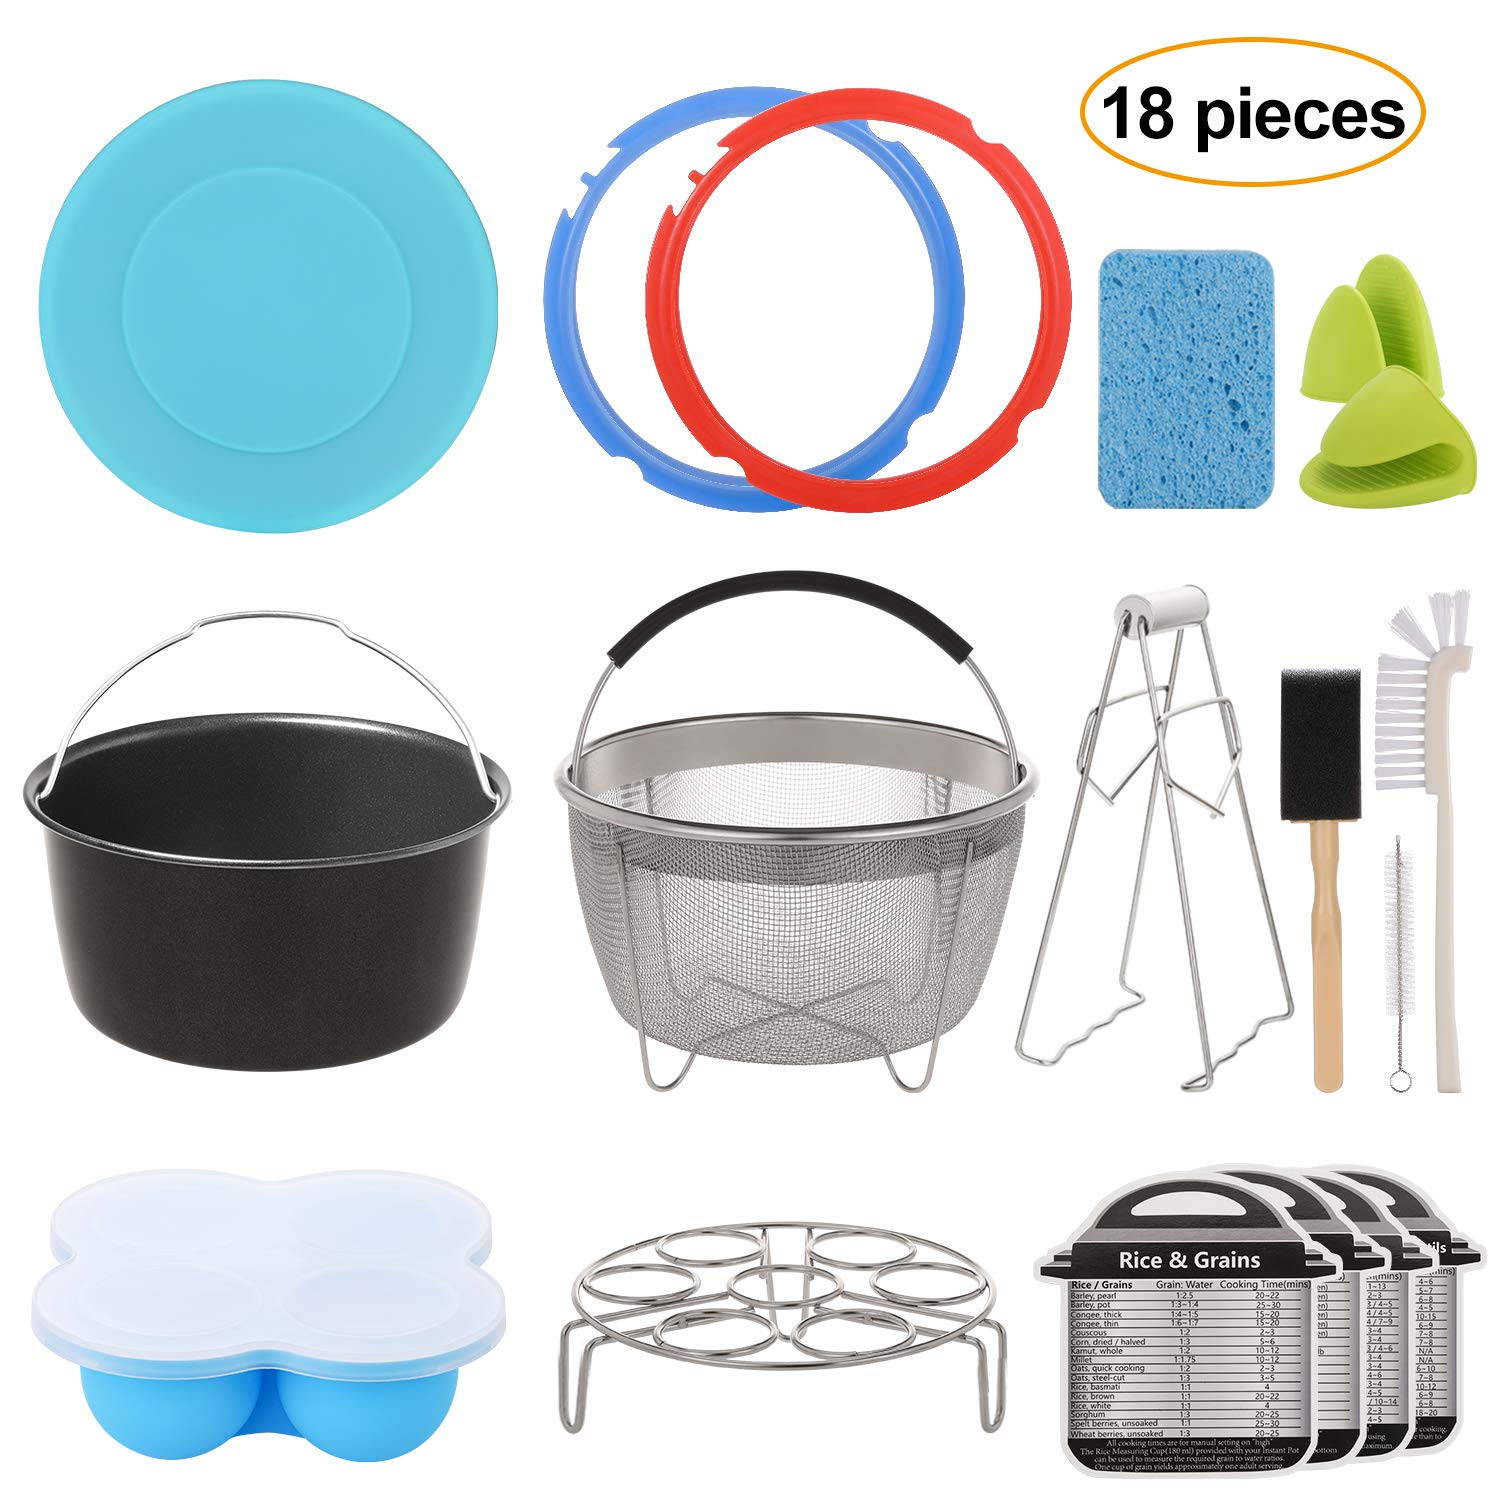 Aozita 18-Piece Mini 3 Quart Accessories for Instant Pot Accessories 3 Qt Only, Steamer Basket, Egg Steam Rack, Egg Bites Mold, Silicone Lid, Cheat Sheets, Mini Mitts, Dish Clip, Cleaning Set by Aozita